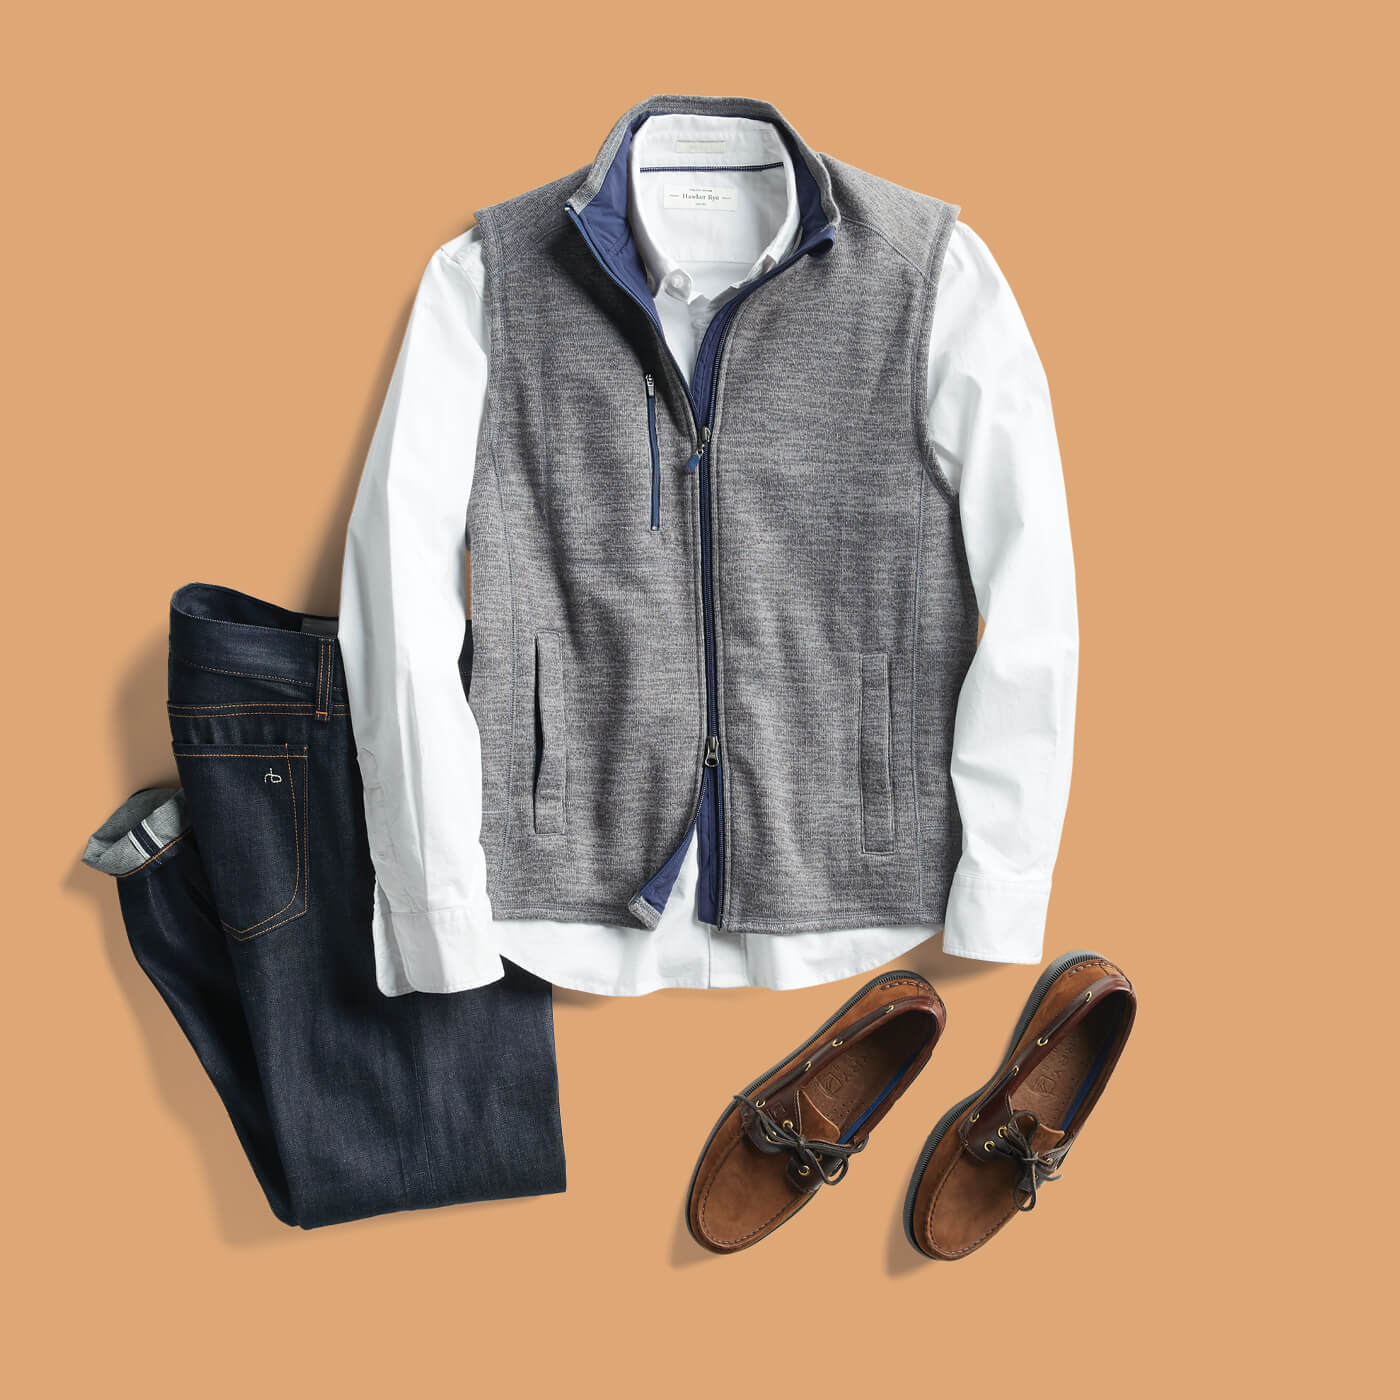 Men's fall style essentials